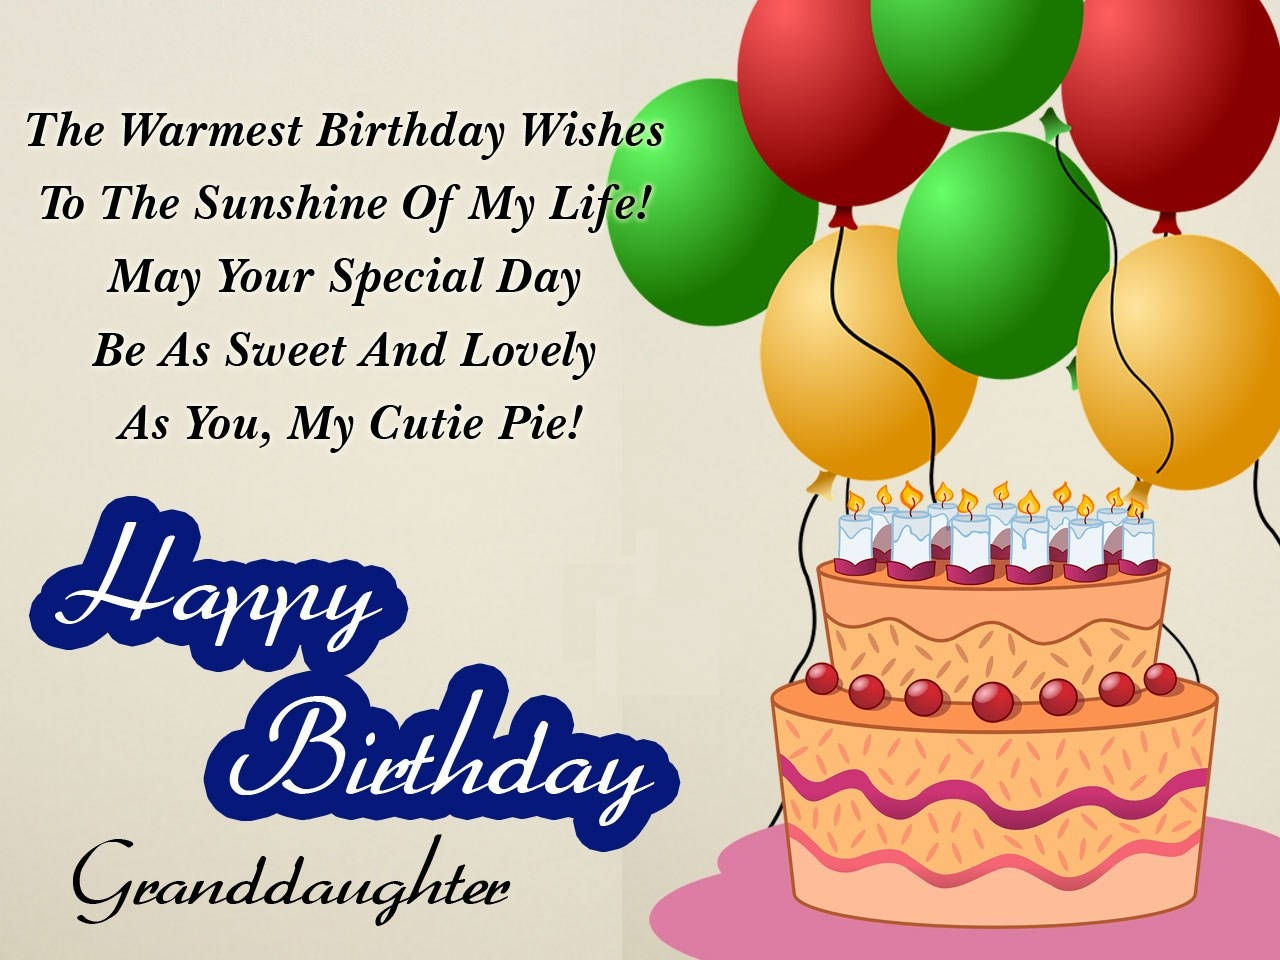 Birthday Wishes For Granddaughter - Happy Birthday Wishes For Granddaughter